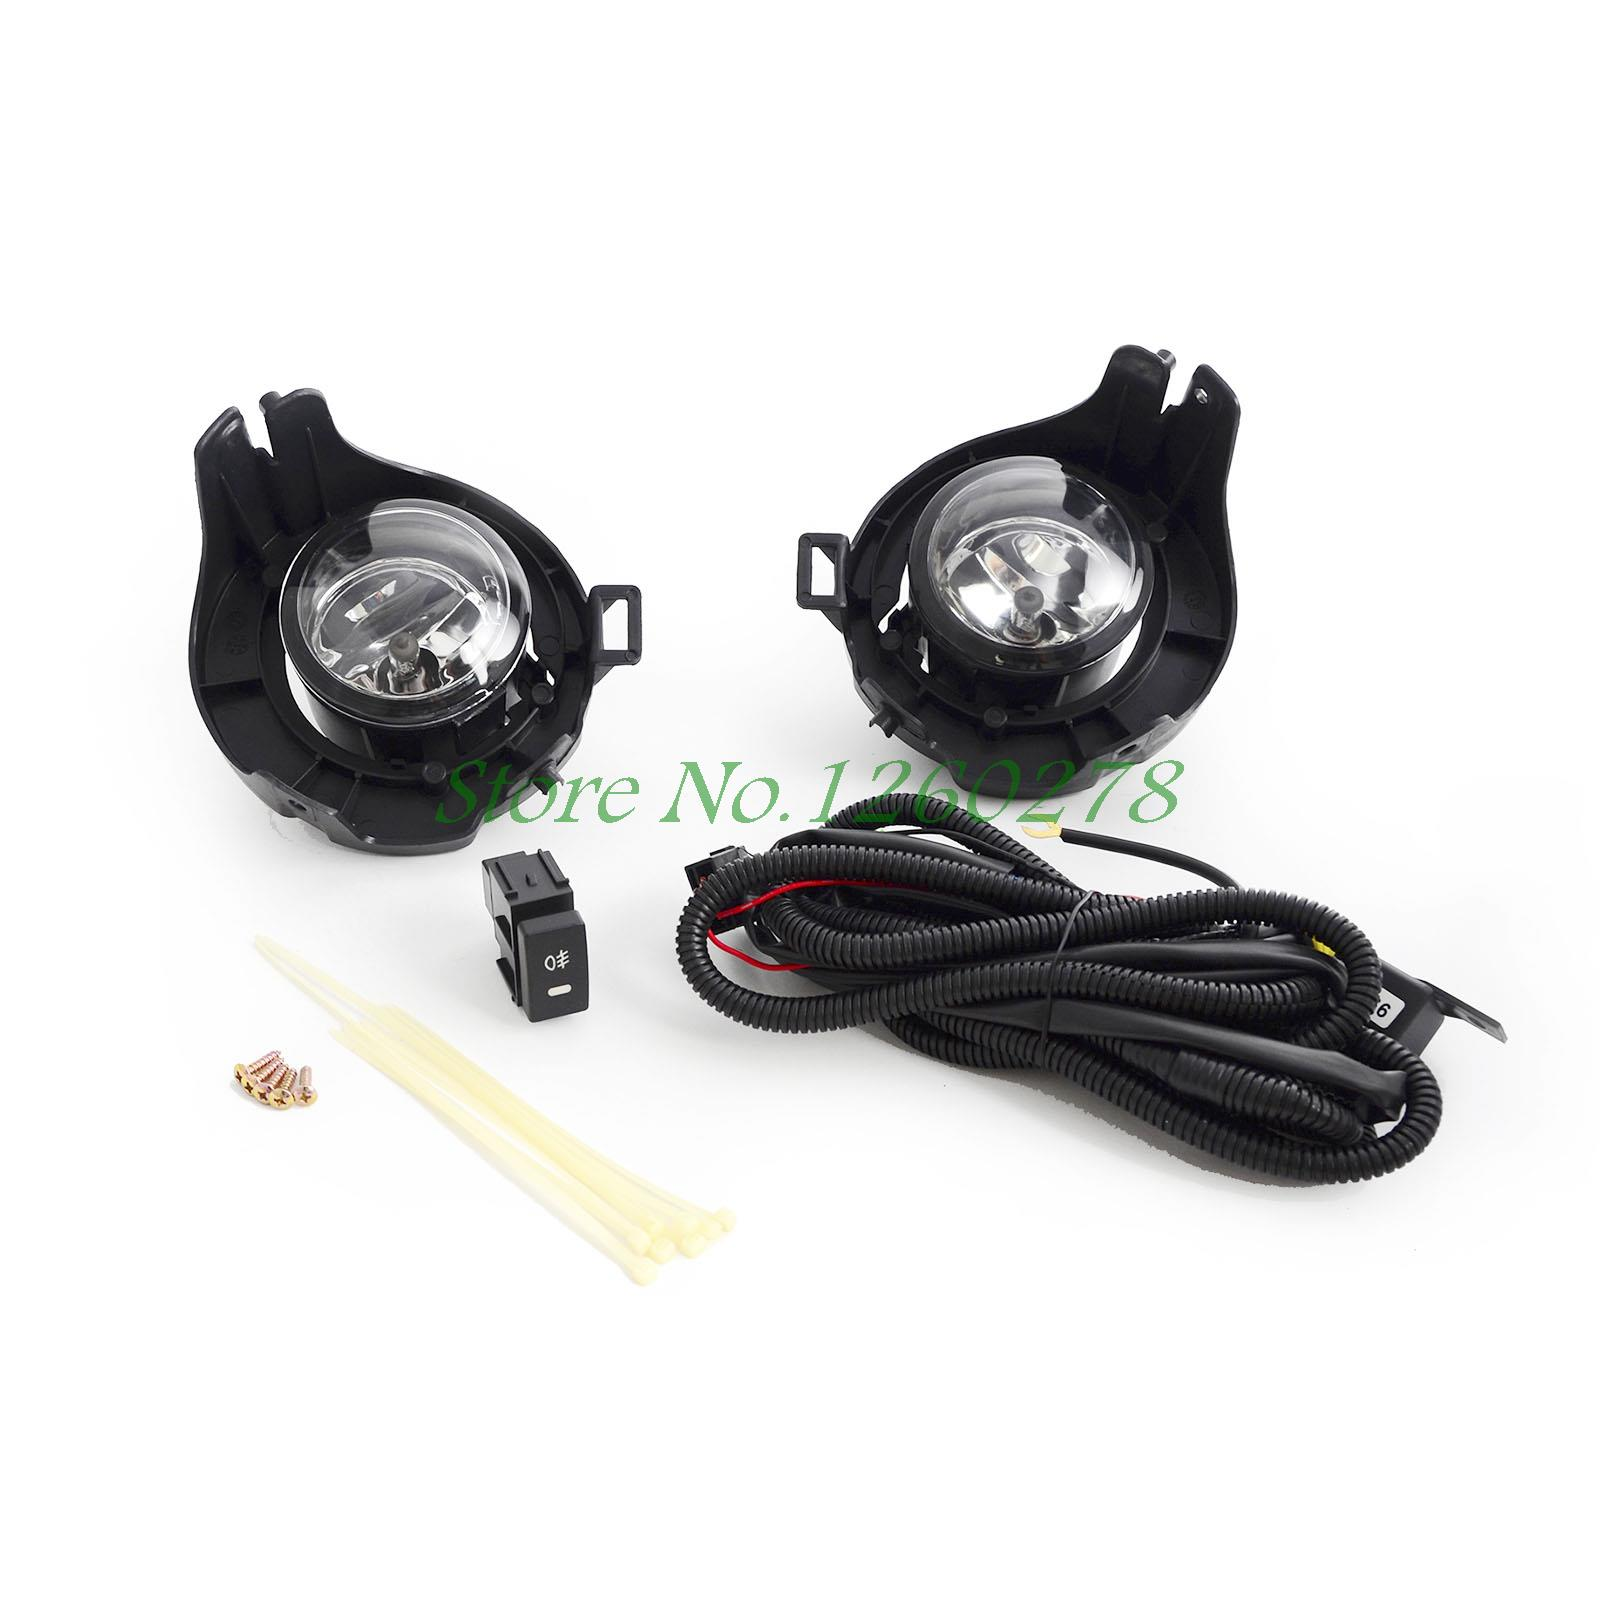 For Nissan NAVARA D40 Driving/ Fog Lights Lamps Complete Kit 2005-2014 for nlssan navara d40